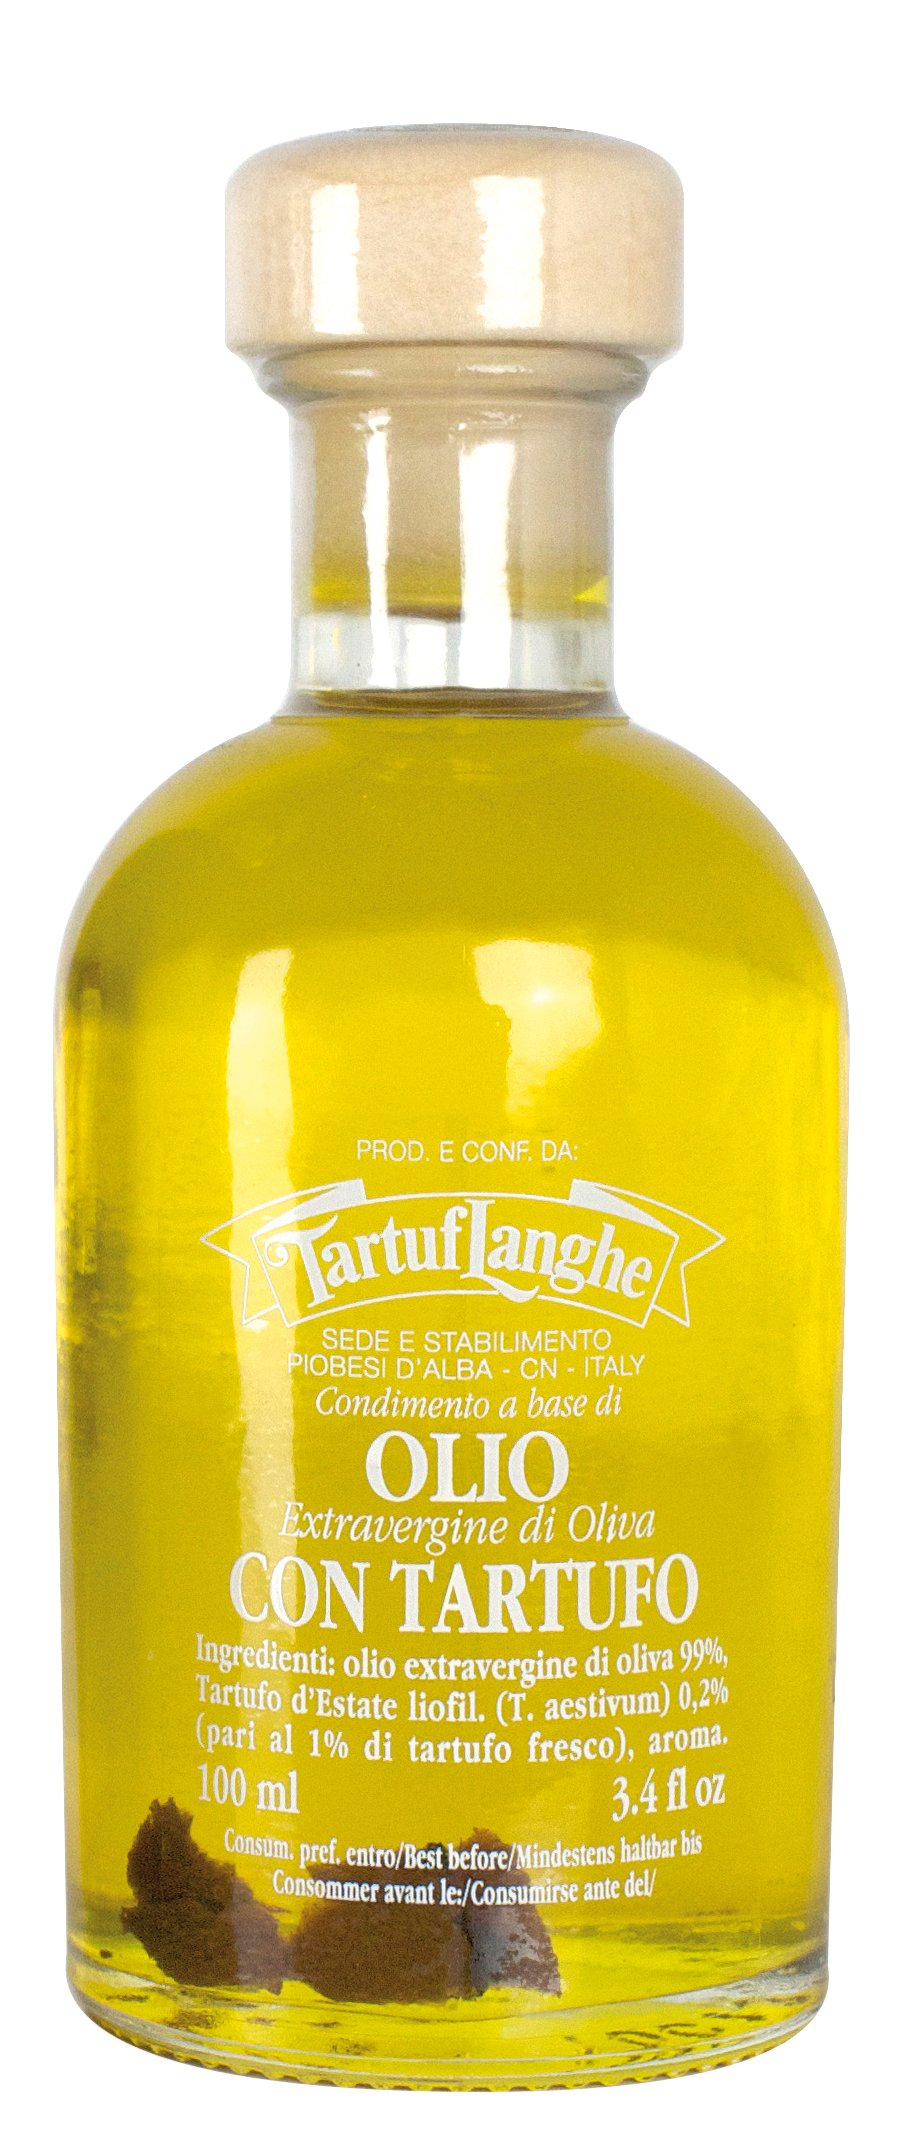 Tartuflanghe EVOO with Summer Black Truffle Slices (100ml)